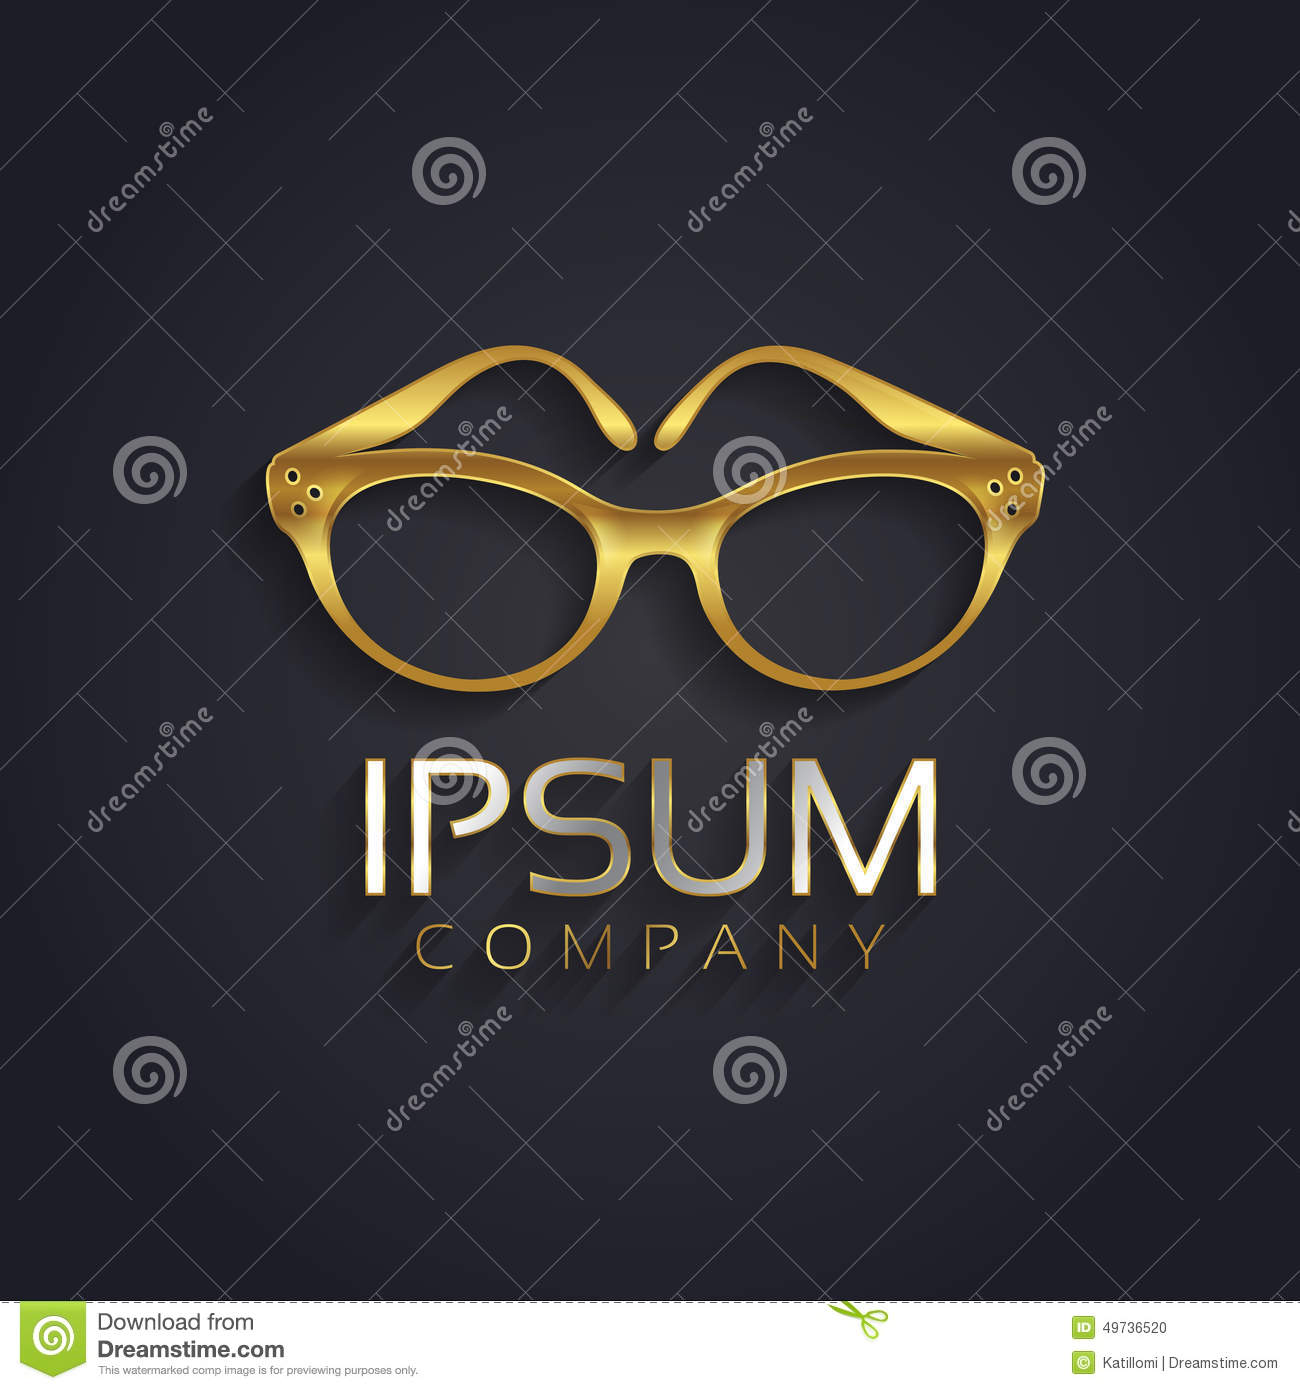 Vector Graphic Elegant Glasses Symbol For Your Company In Gold With